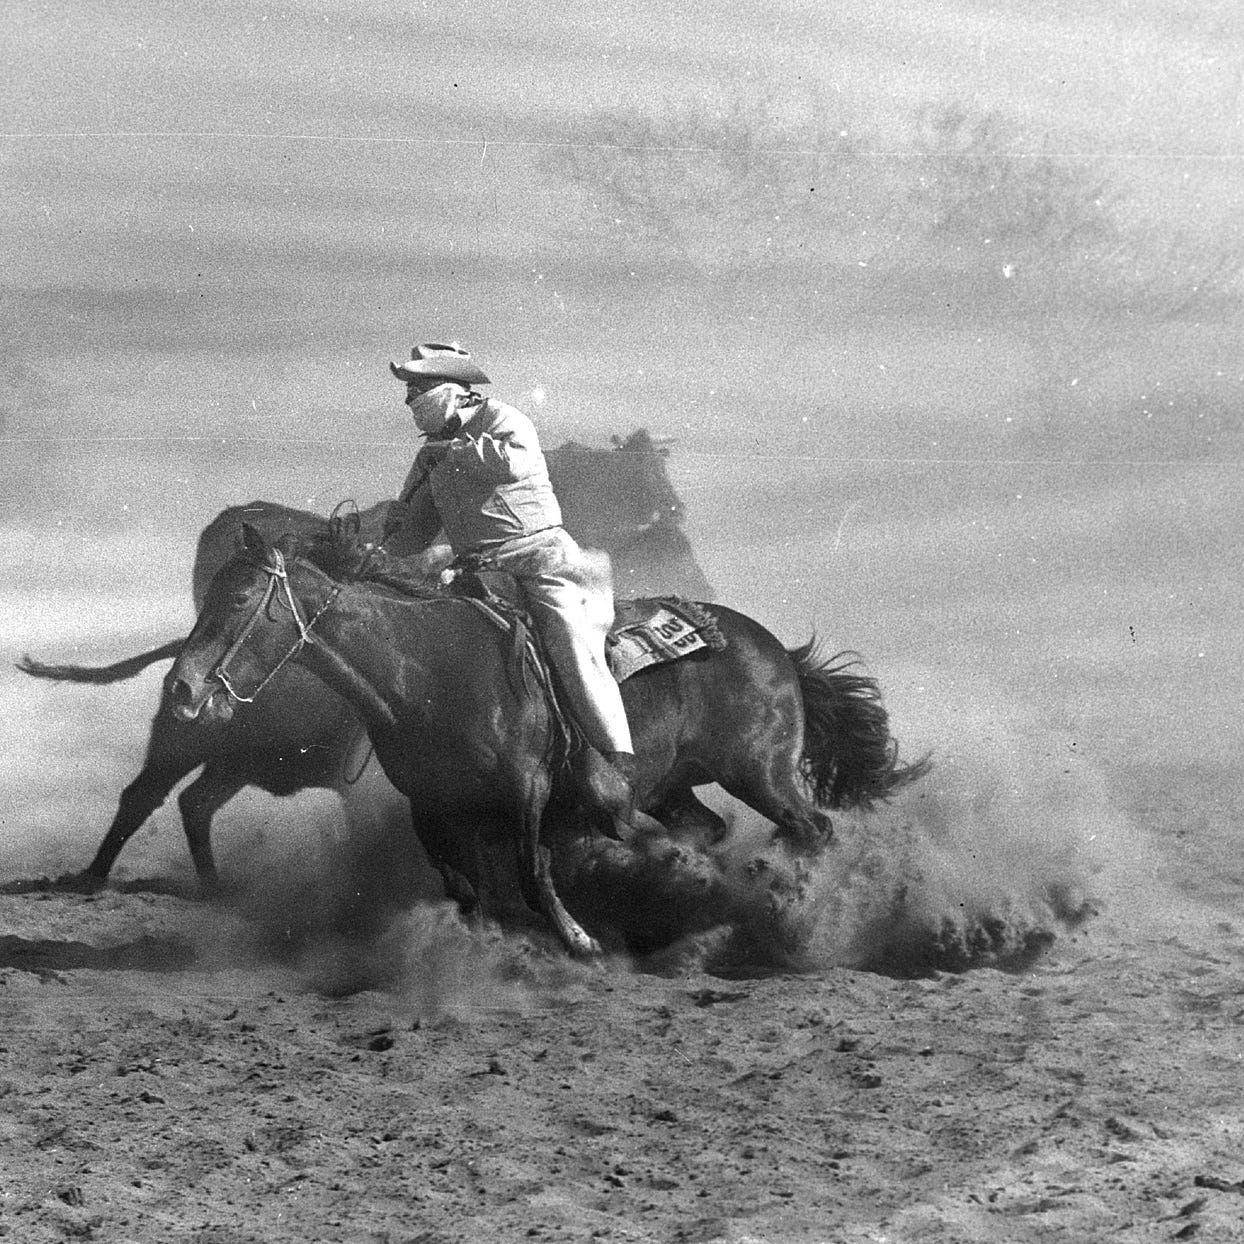 South Texas' ranching heritage still going strong